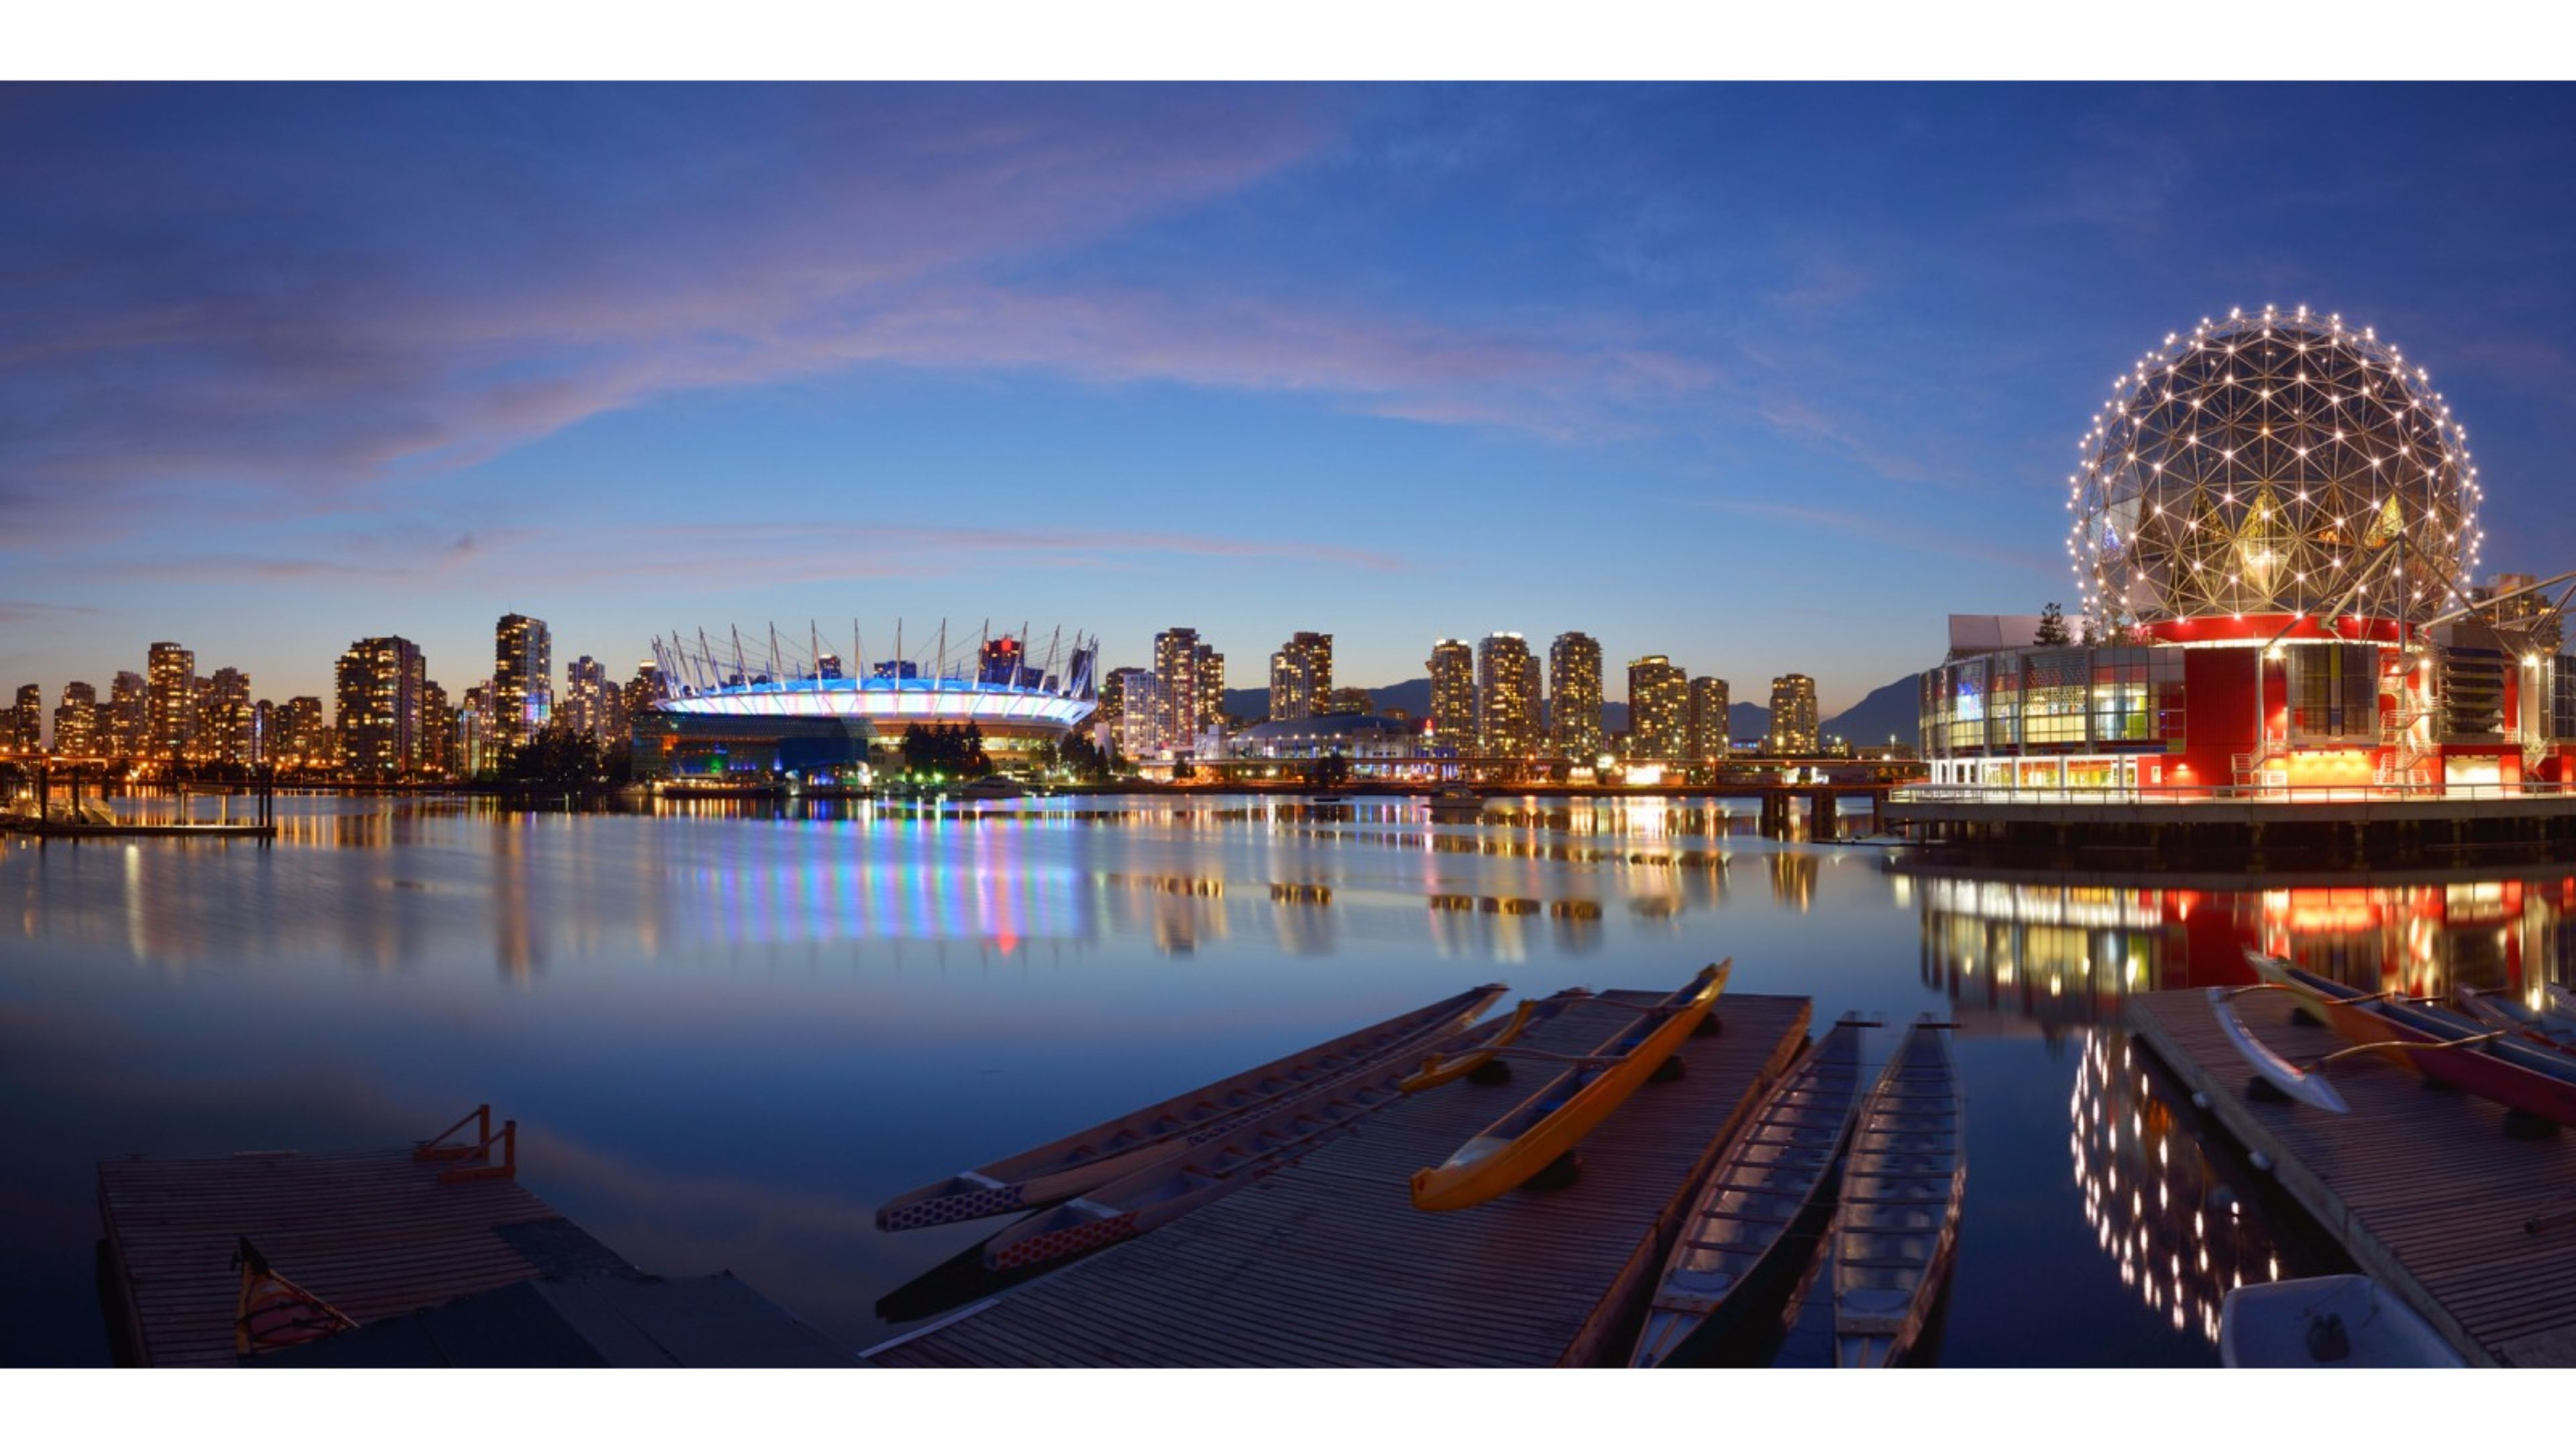 Vancouver-4k-Wallpapers-unabuenaidea.es (5)